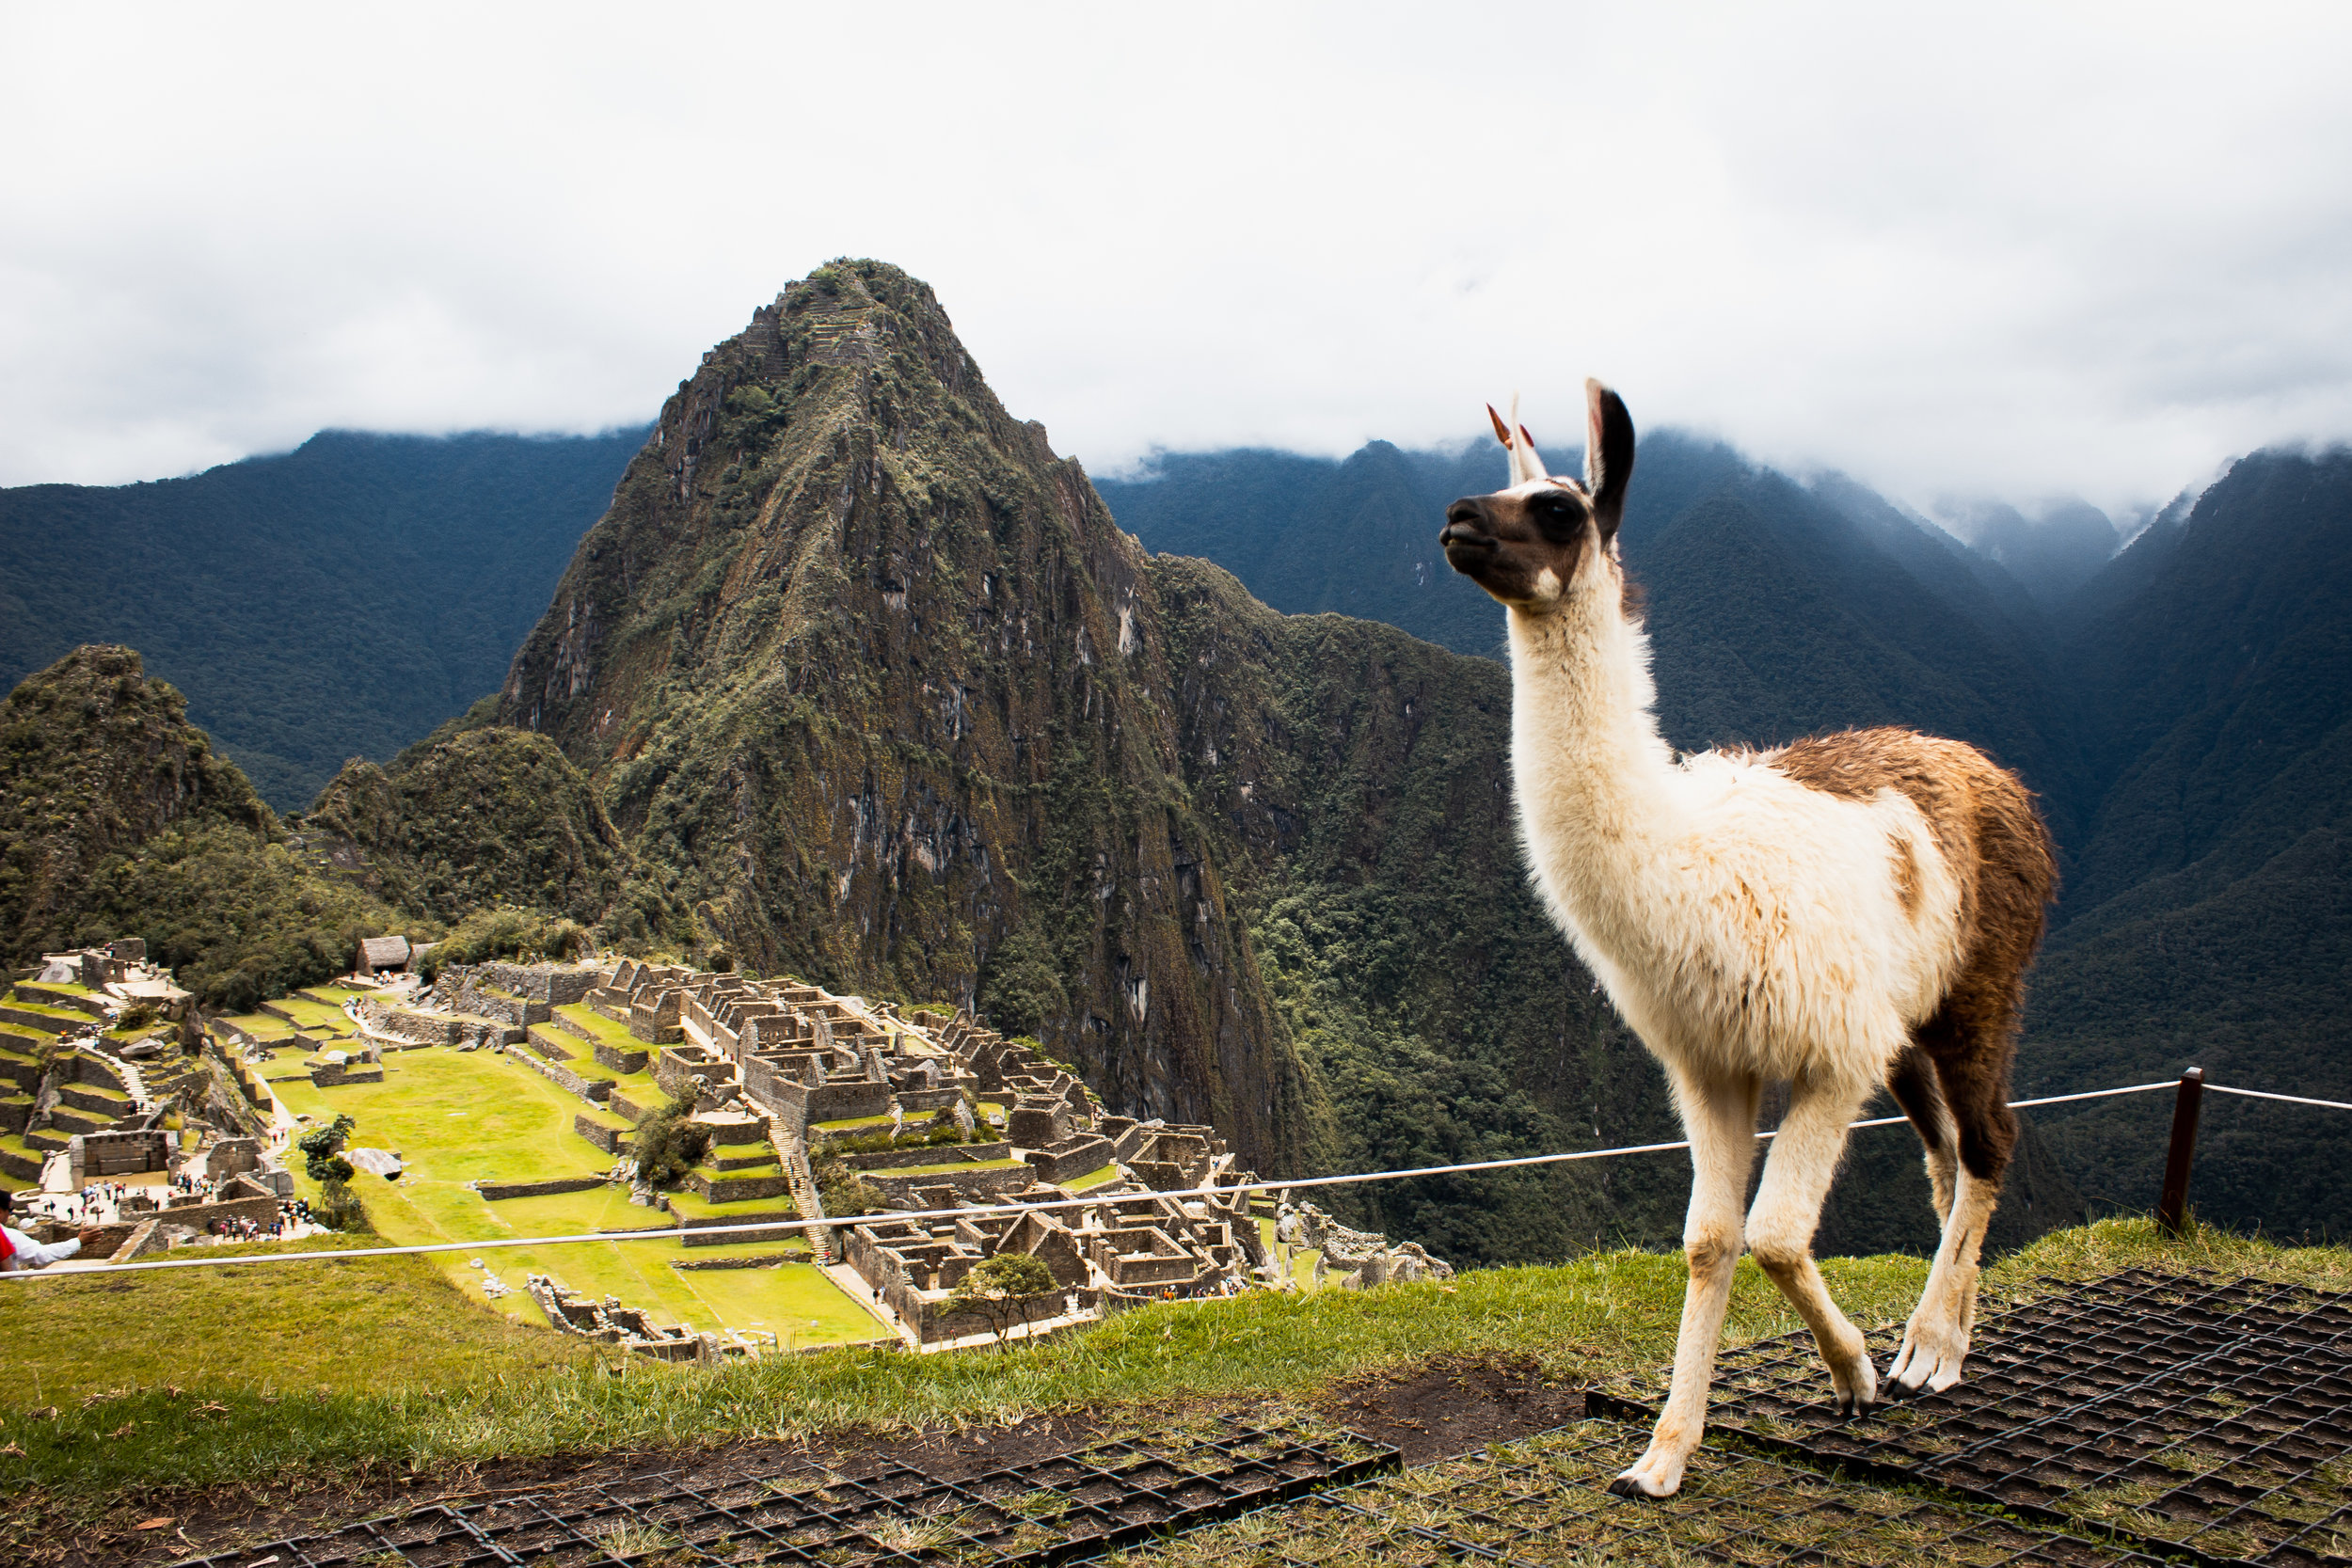 GAP Year Brazil - Peru - How about spending half the year volunteering in Peru, and the other half in Brazil? Make the most out of your GAP Year with this amazing opportunity to discover and make a positive impact in two completely different, yet both fascinating, cultures in South America! LEARN MORE!